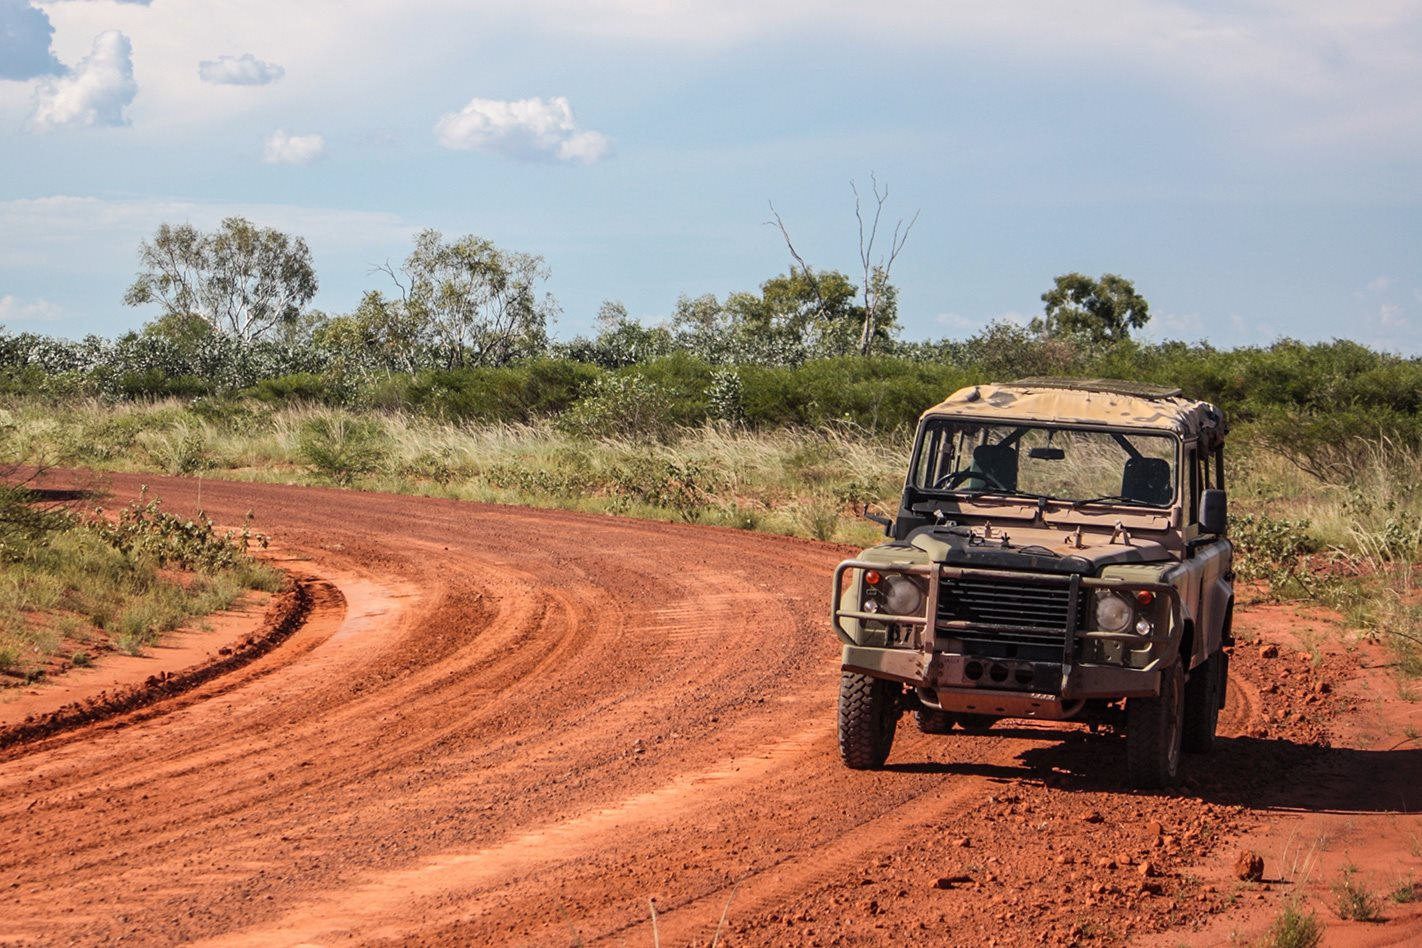 1988 Land Rover Perentie Defender 110 Long Term Review Part 1 4x4 Shed Driving Light Wiring Australian Owners